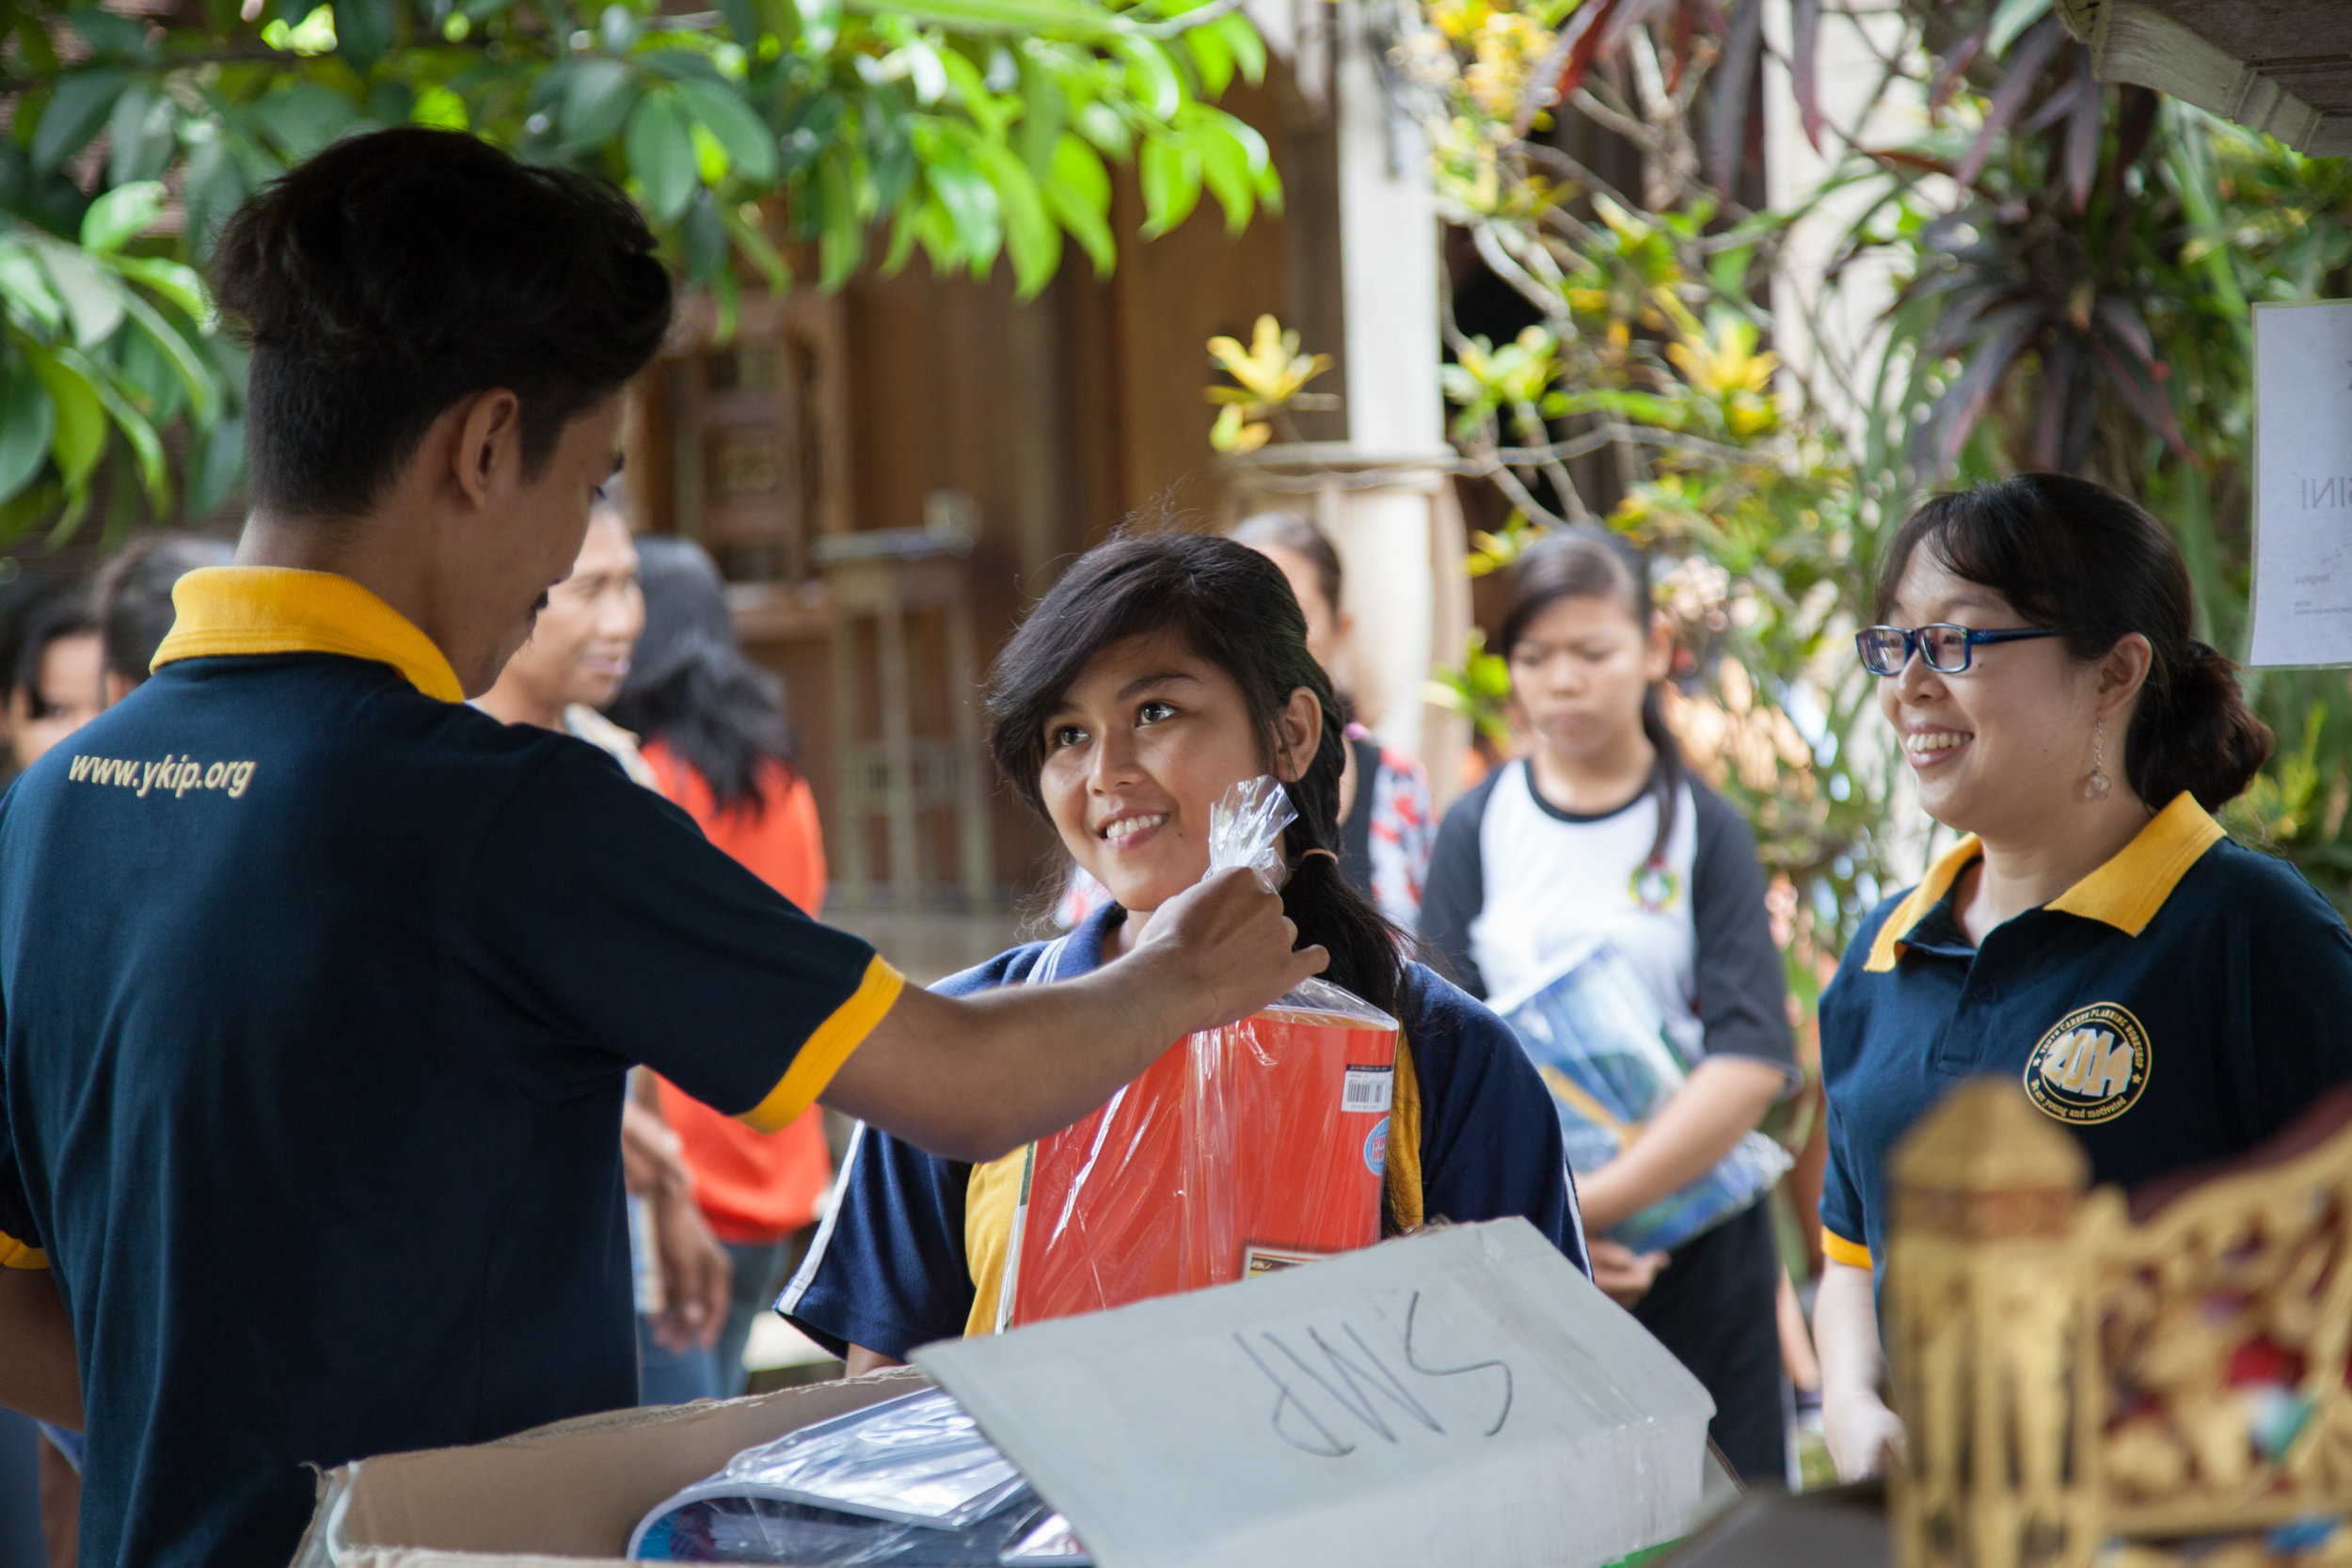 Yayasan Kemanusiaan Ibu Pertiwi (YKIP) - IMPROVING THE LIVES OF POOR FAMILIES IN BALI BY BREAKING THE CYCLE OF POVERTY THROUGH EDUCATIONAL SUPPORT AND SERVICESEstablished only days after the Bali Bombing in October 2002, YKIP aims to improve the lives of marginalised communities in Bali through educational opportunities by providing scholarships to disadvantaged children.Over the years, YKIP has supported over 900 children in Bali, with more than 500 of these children completing their studies and finding successful employment. Inspirasia Foundation is proud to be a core supporter of YKIP's Kembali, KIDS, Vocational and University Programmes since 2003.